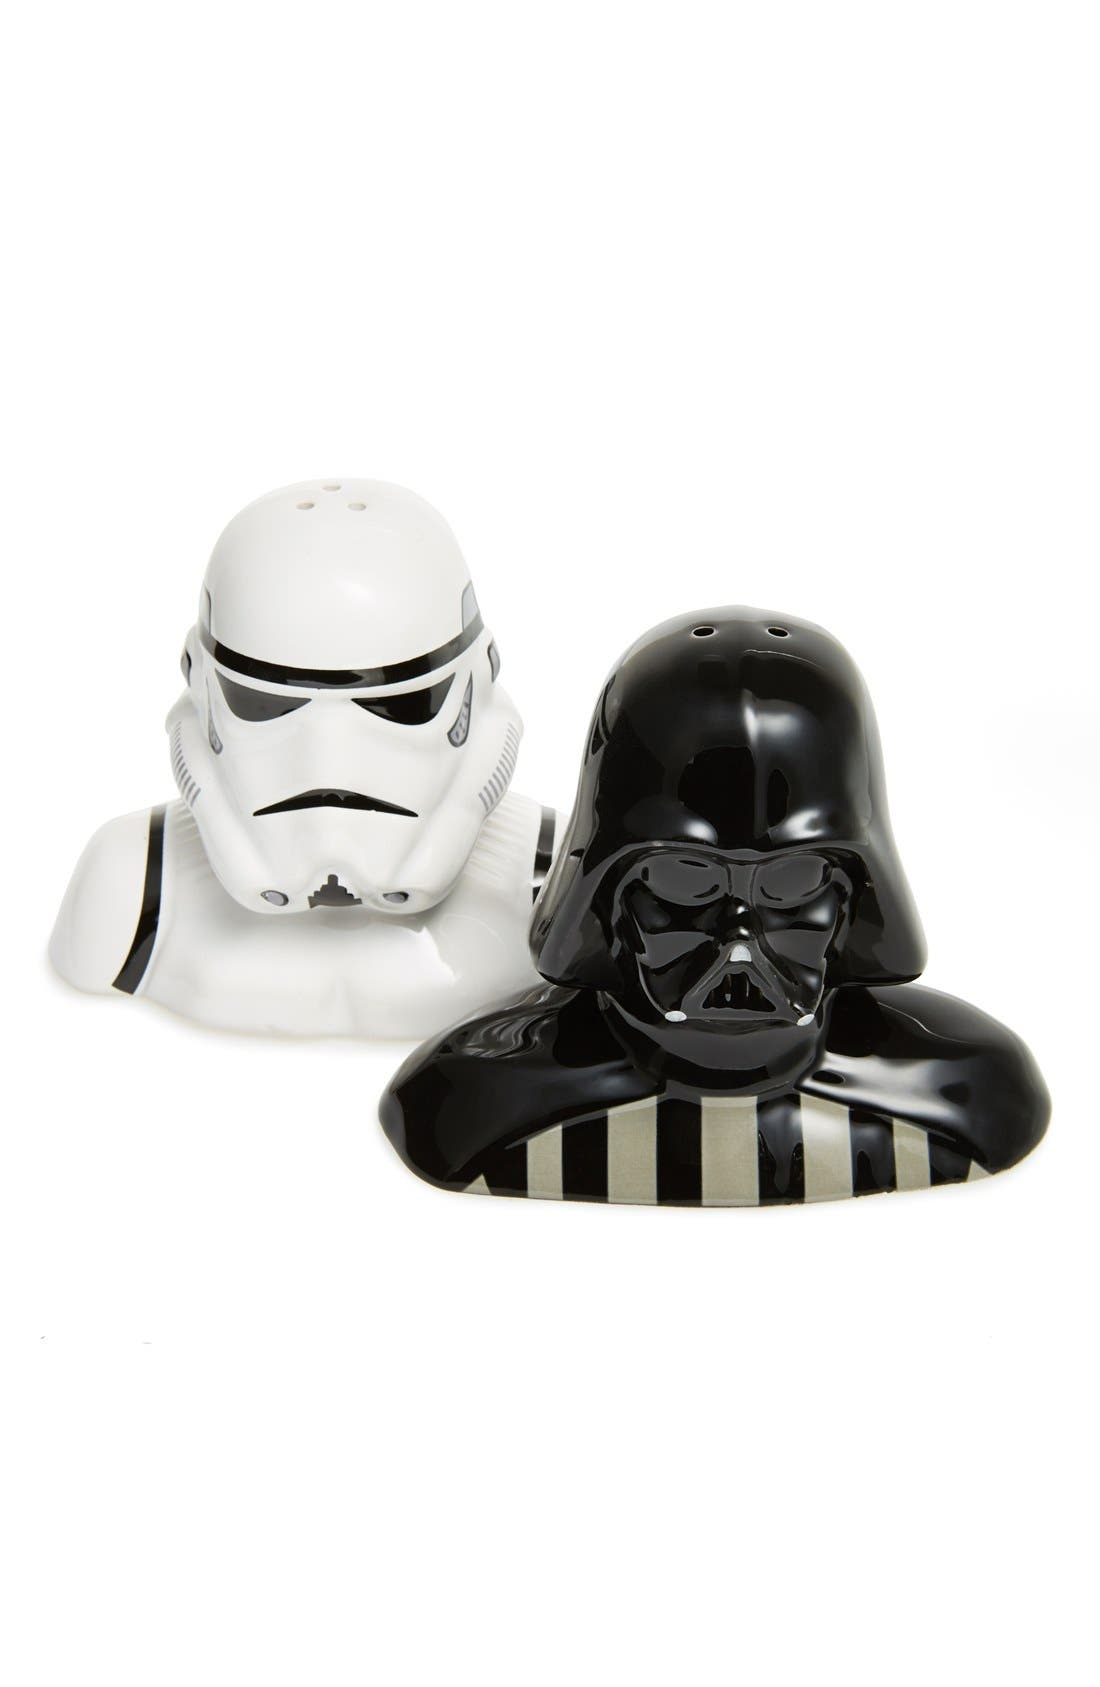 Alternate Image 1 Selected - Vandor Star Wars Salt & Pepper Shakers